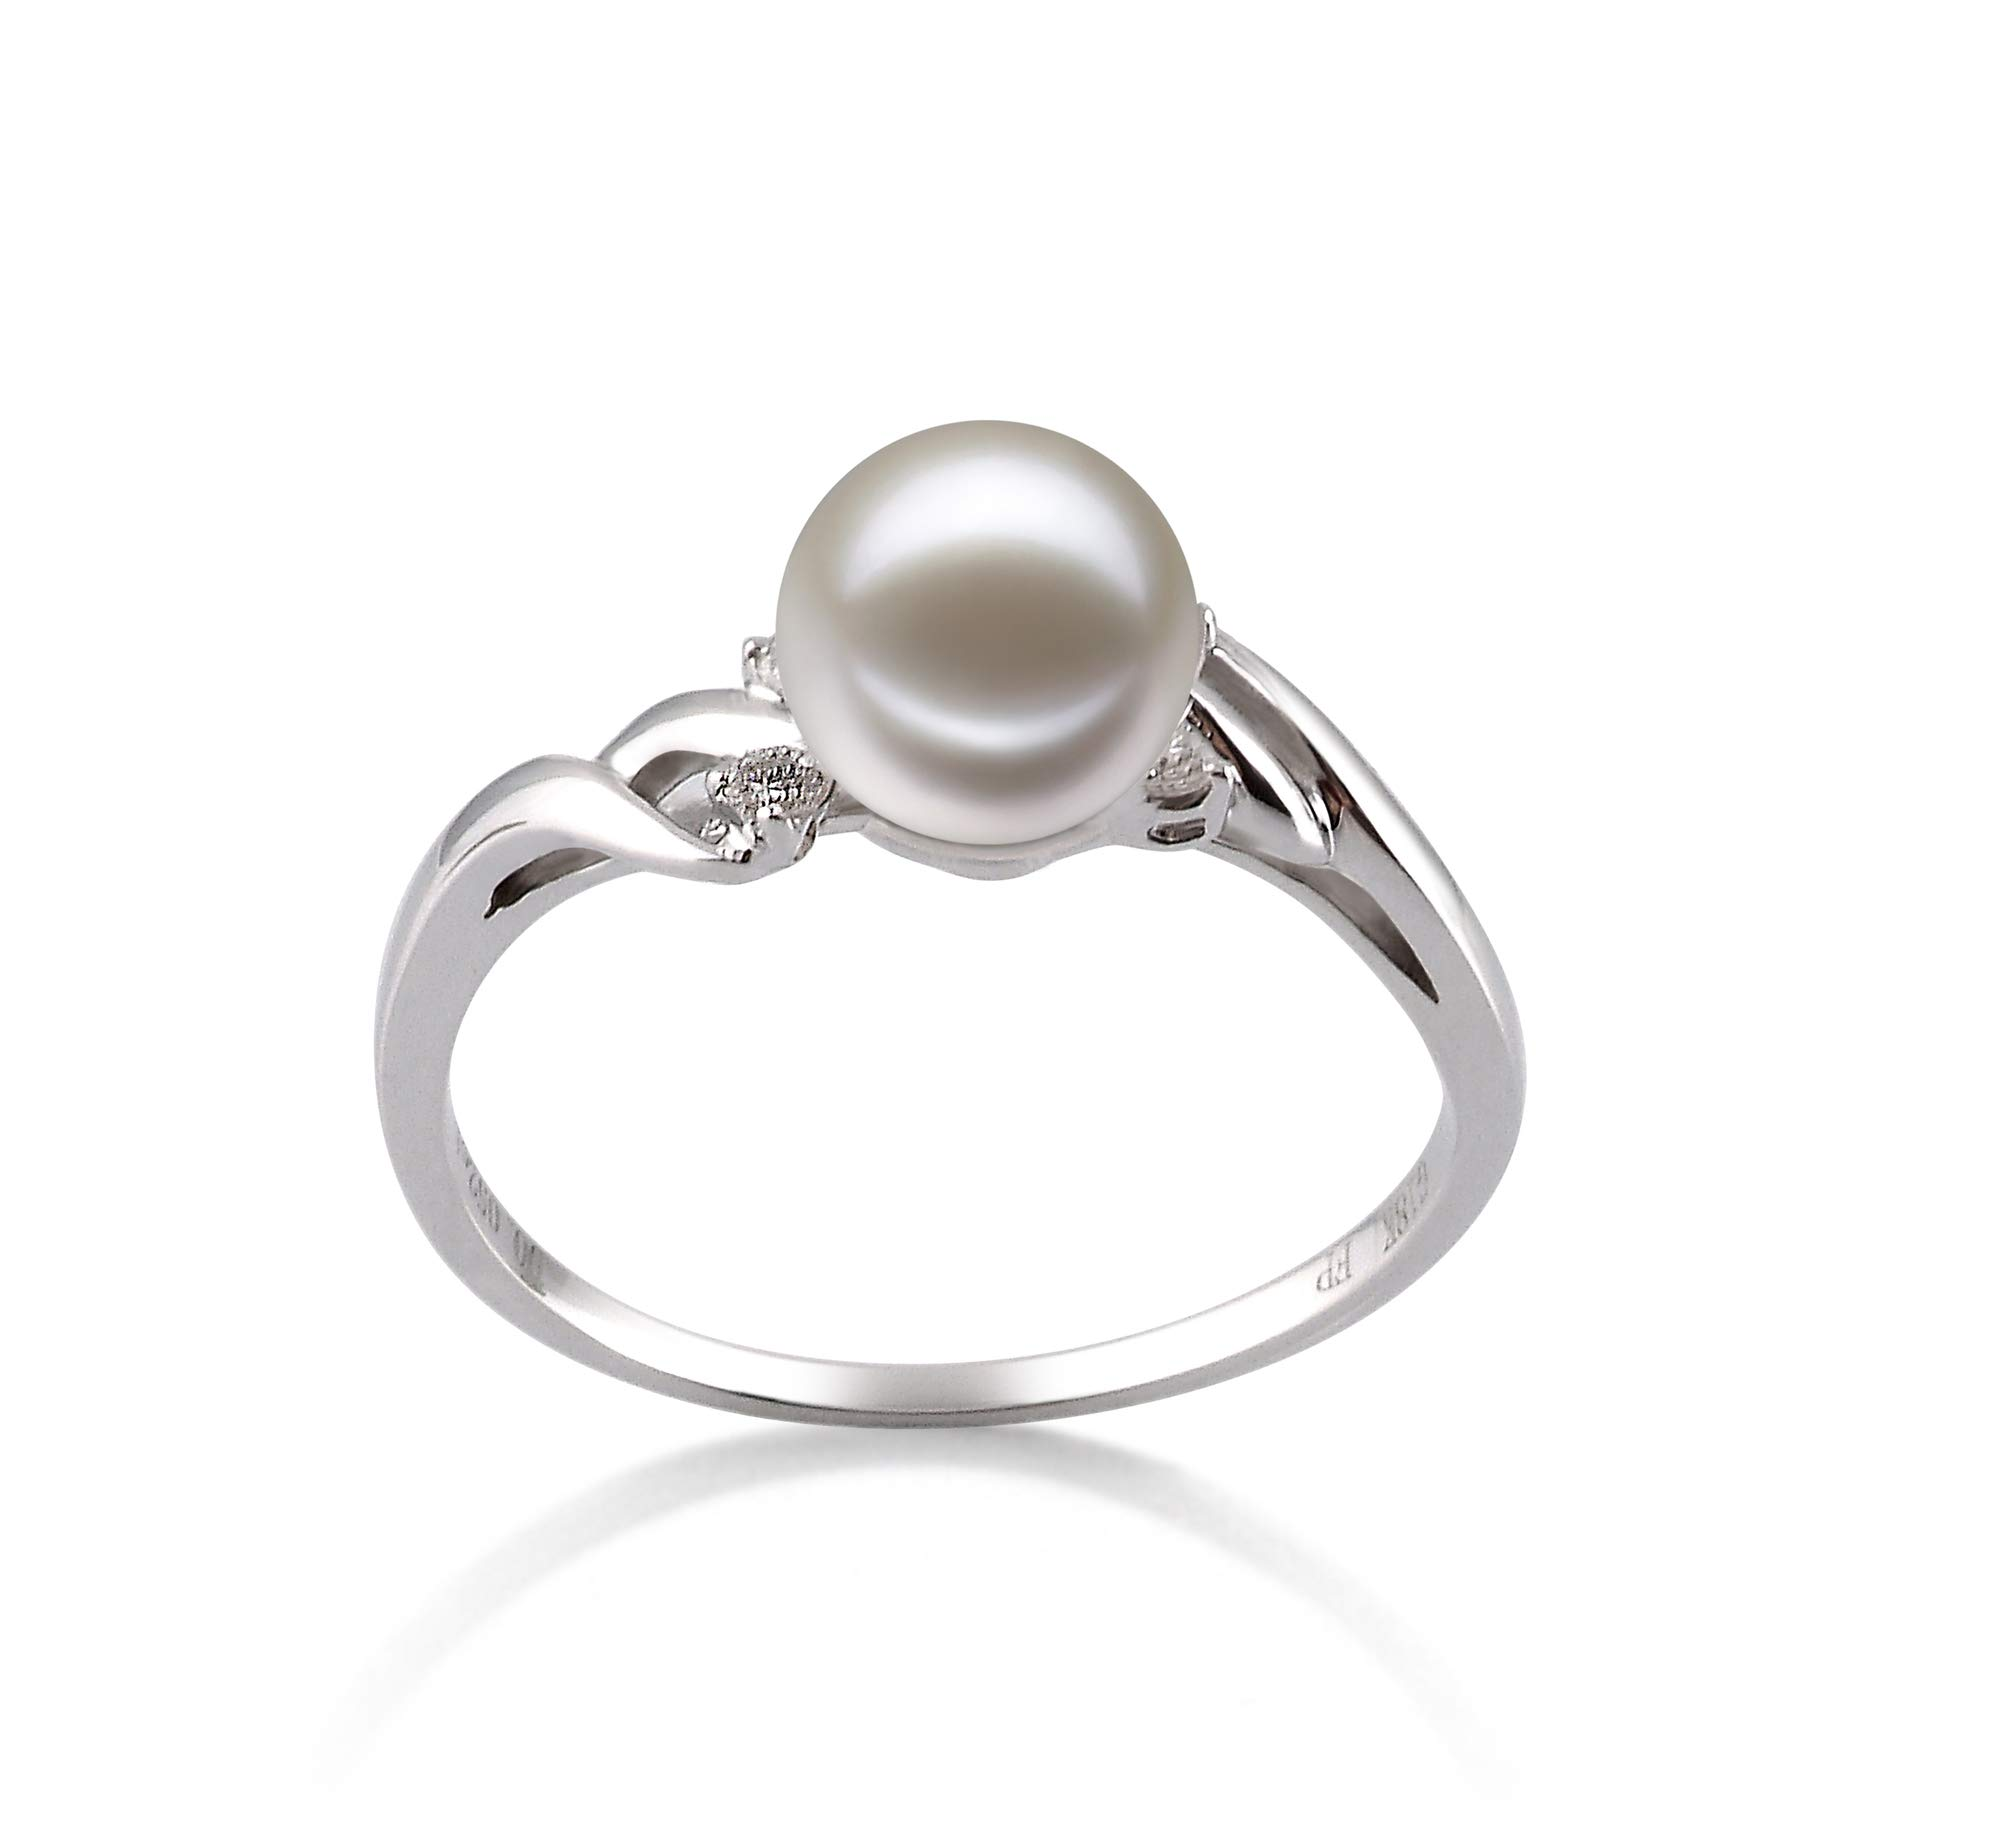 Andrea White 6-7mm AAAA Quality Freshwater 14K White Gold Cultured Pearl Ring For Women - Size-8 by PearlsOnly